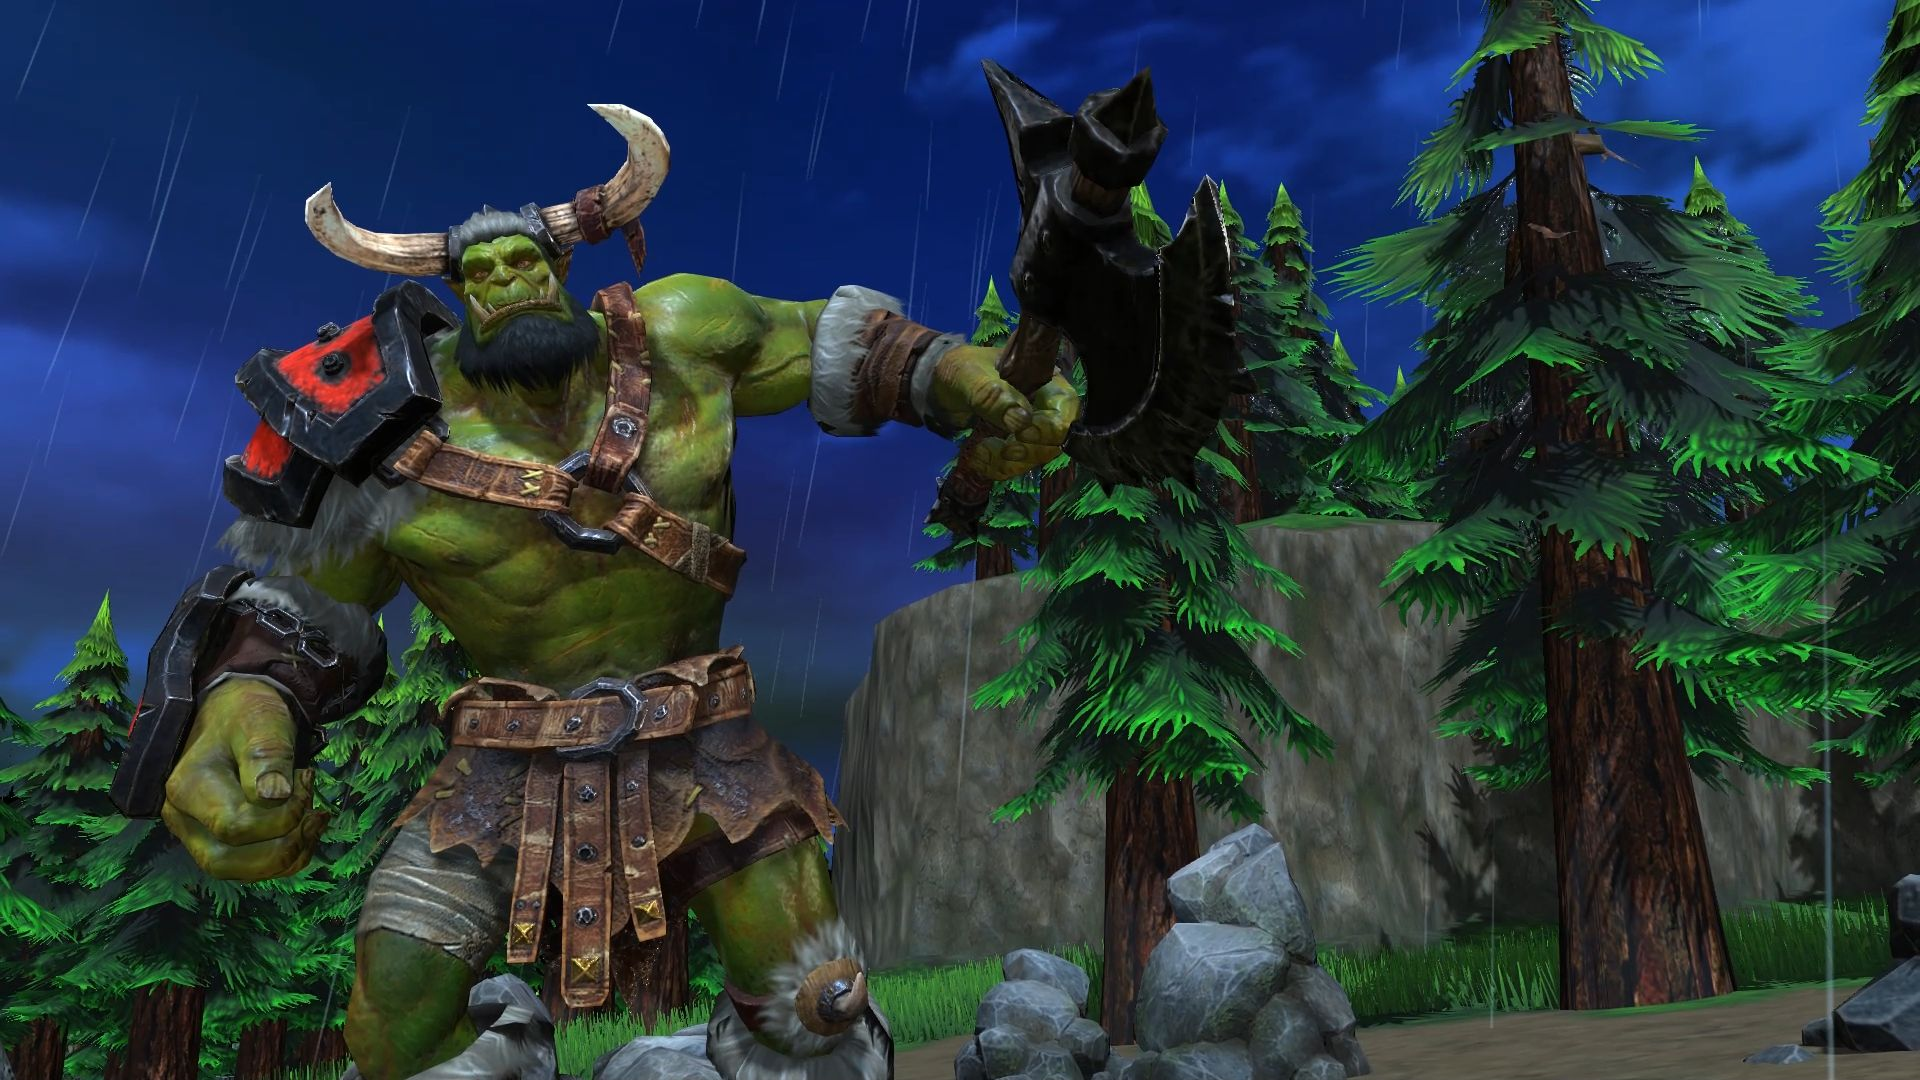 Screenshot de Warcraft III: Reforged.